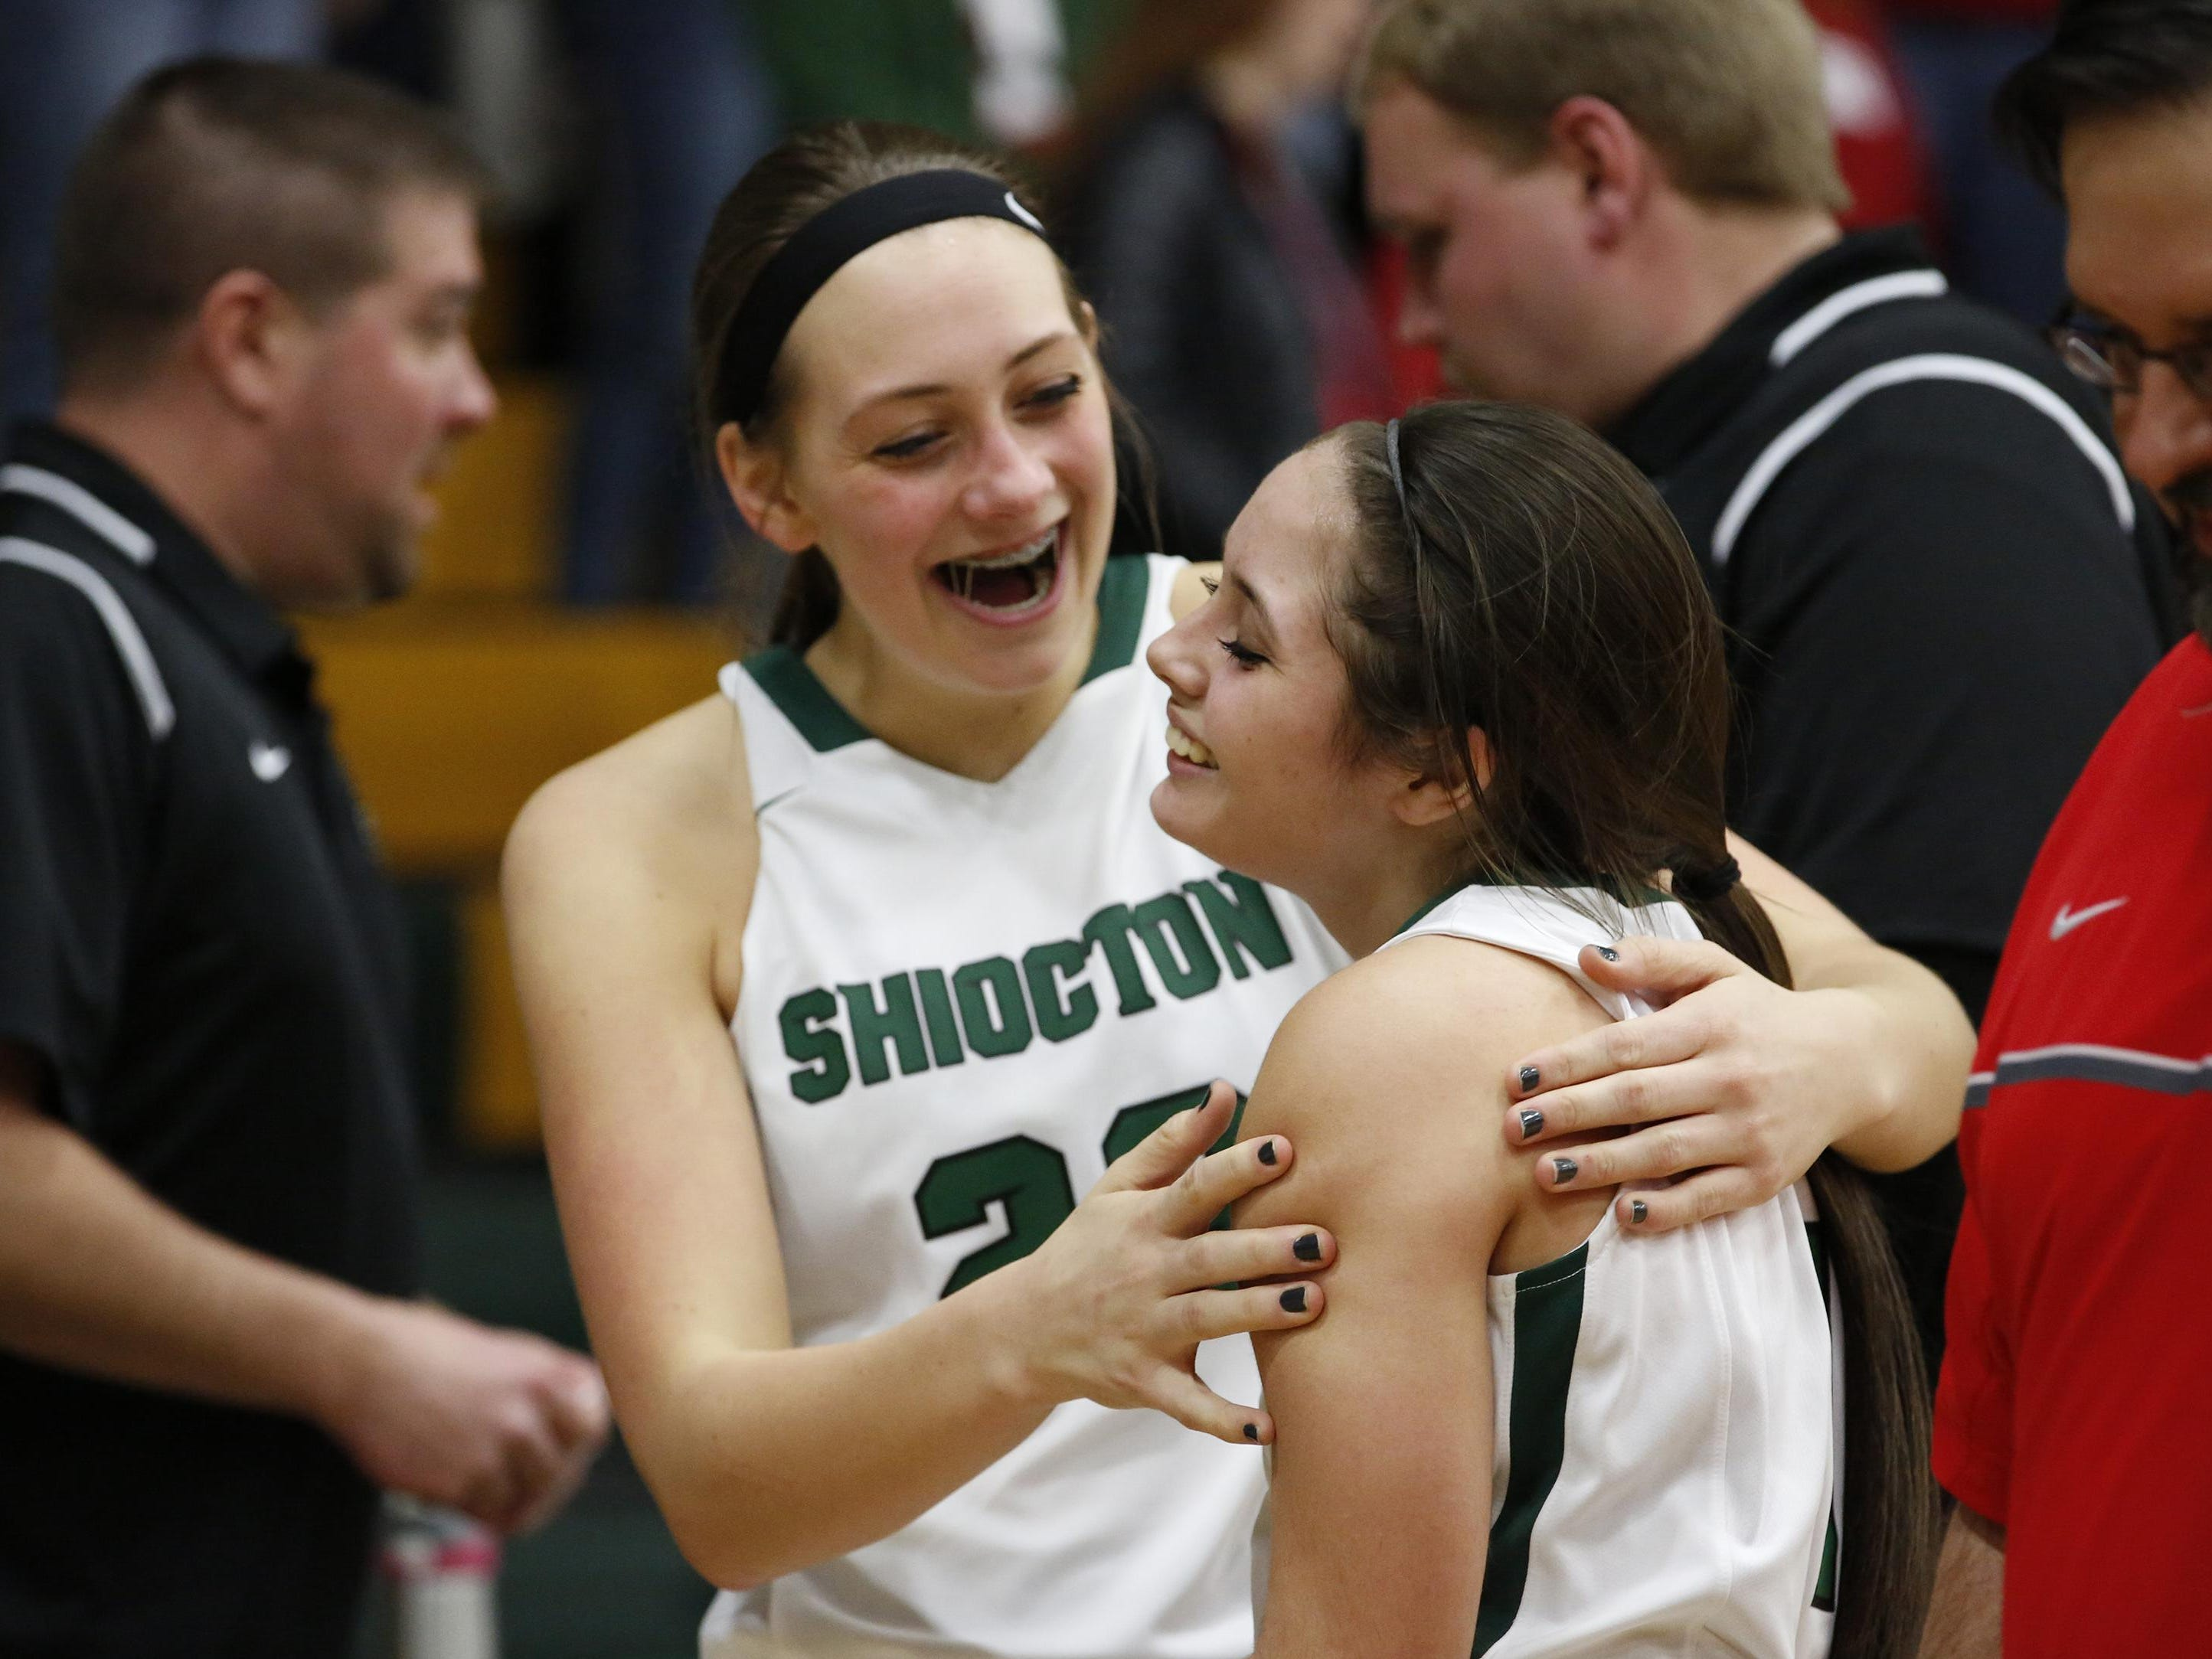 Shiocton's Jordan Elliott, left, and Madisyn Morack celebrate their WIAA Division 4 sectional semifinal win over Manitowoc Lutheran on Thursday in Green Bay.